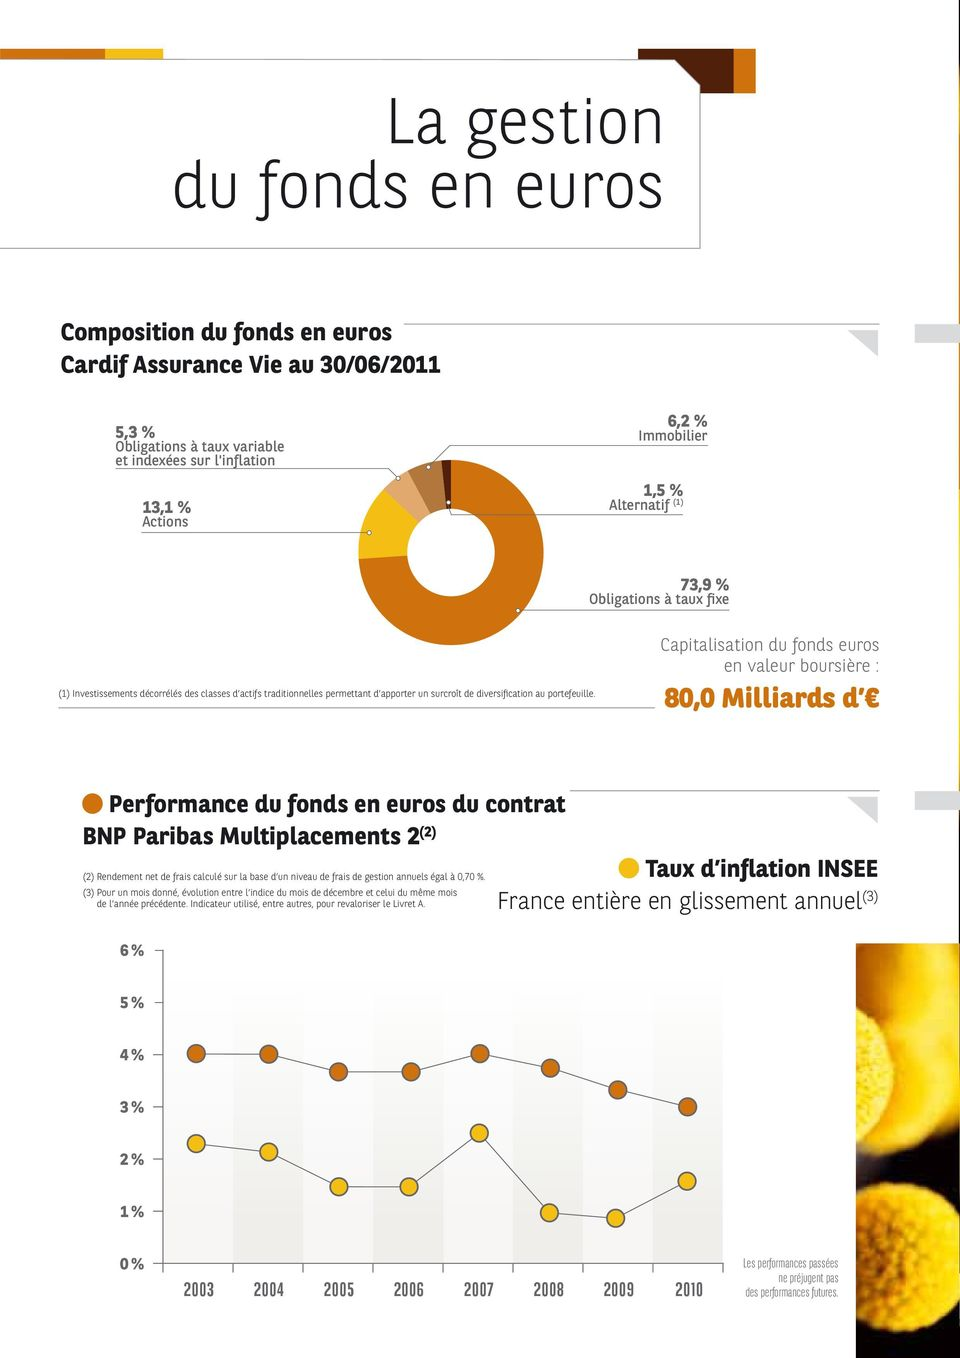 Capitalisation du fonds euros en valeur boursière : 80,0 Milliards d Performance du fonds en euros du contrat BNP Paribas Multiplacements 2 (2) (2) Rendement net de frais calculé sur la base d un